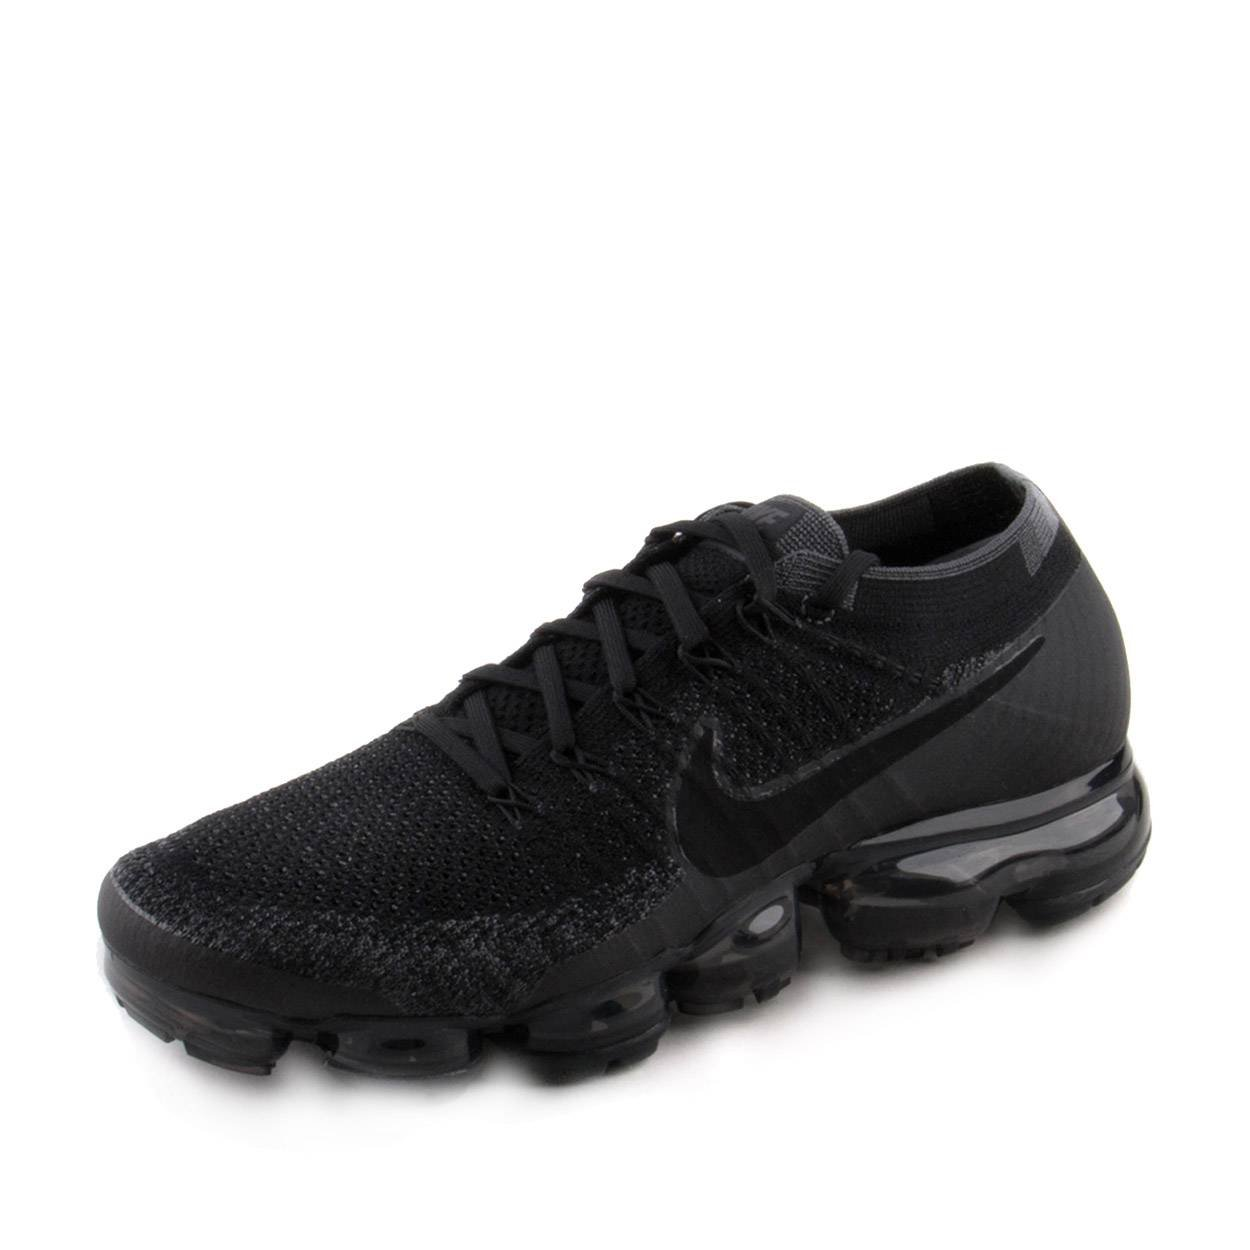 Galleon - Nike Air Vapormax Flyknit - 849558 007 faf661d2a